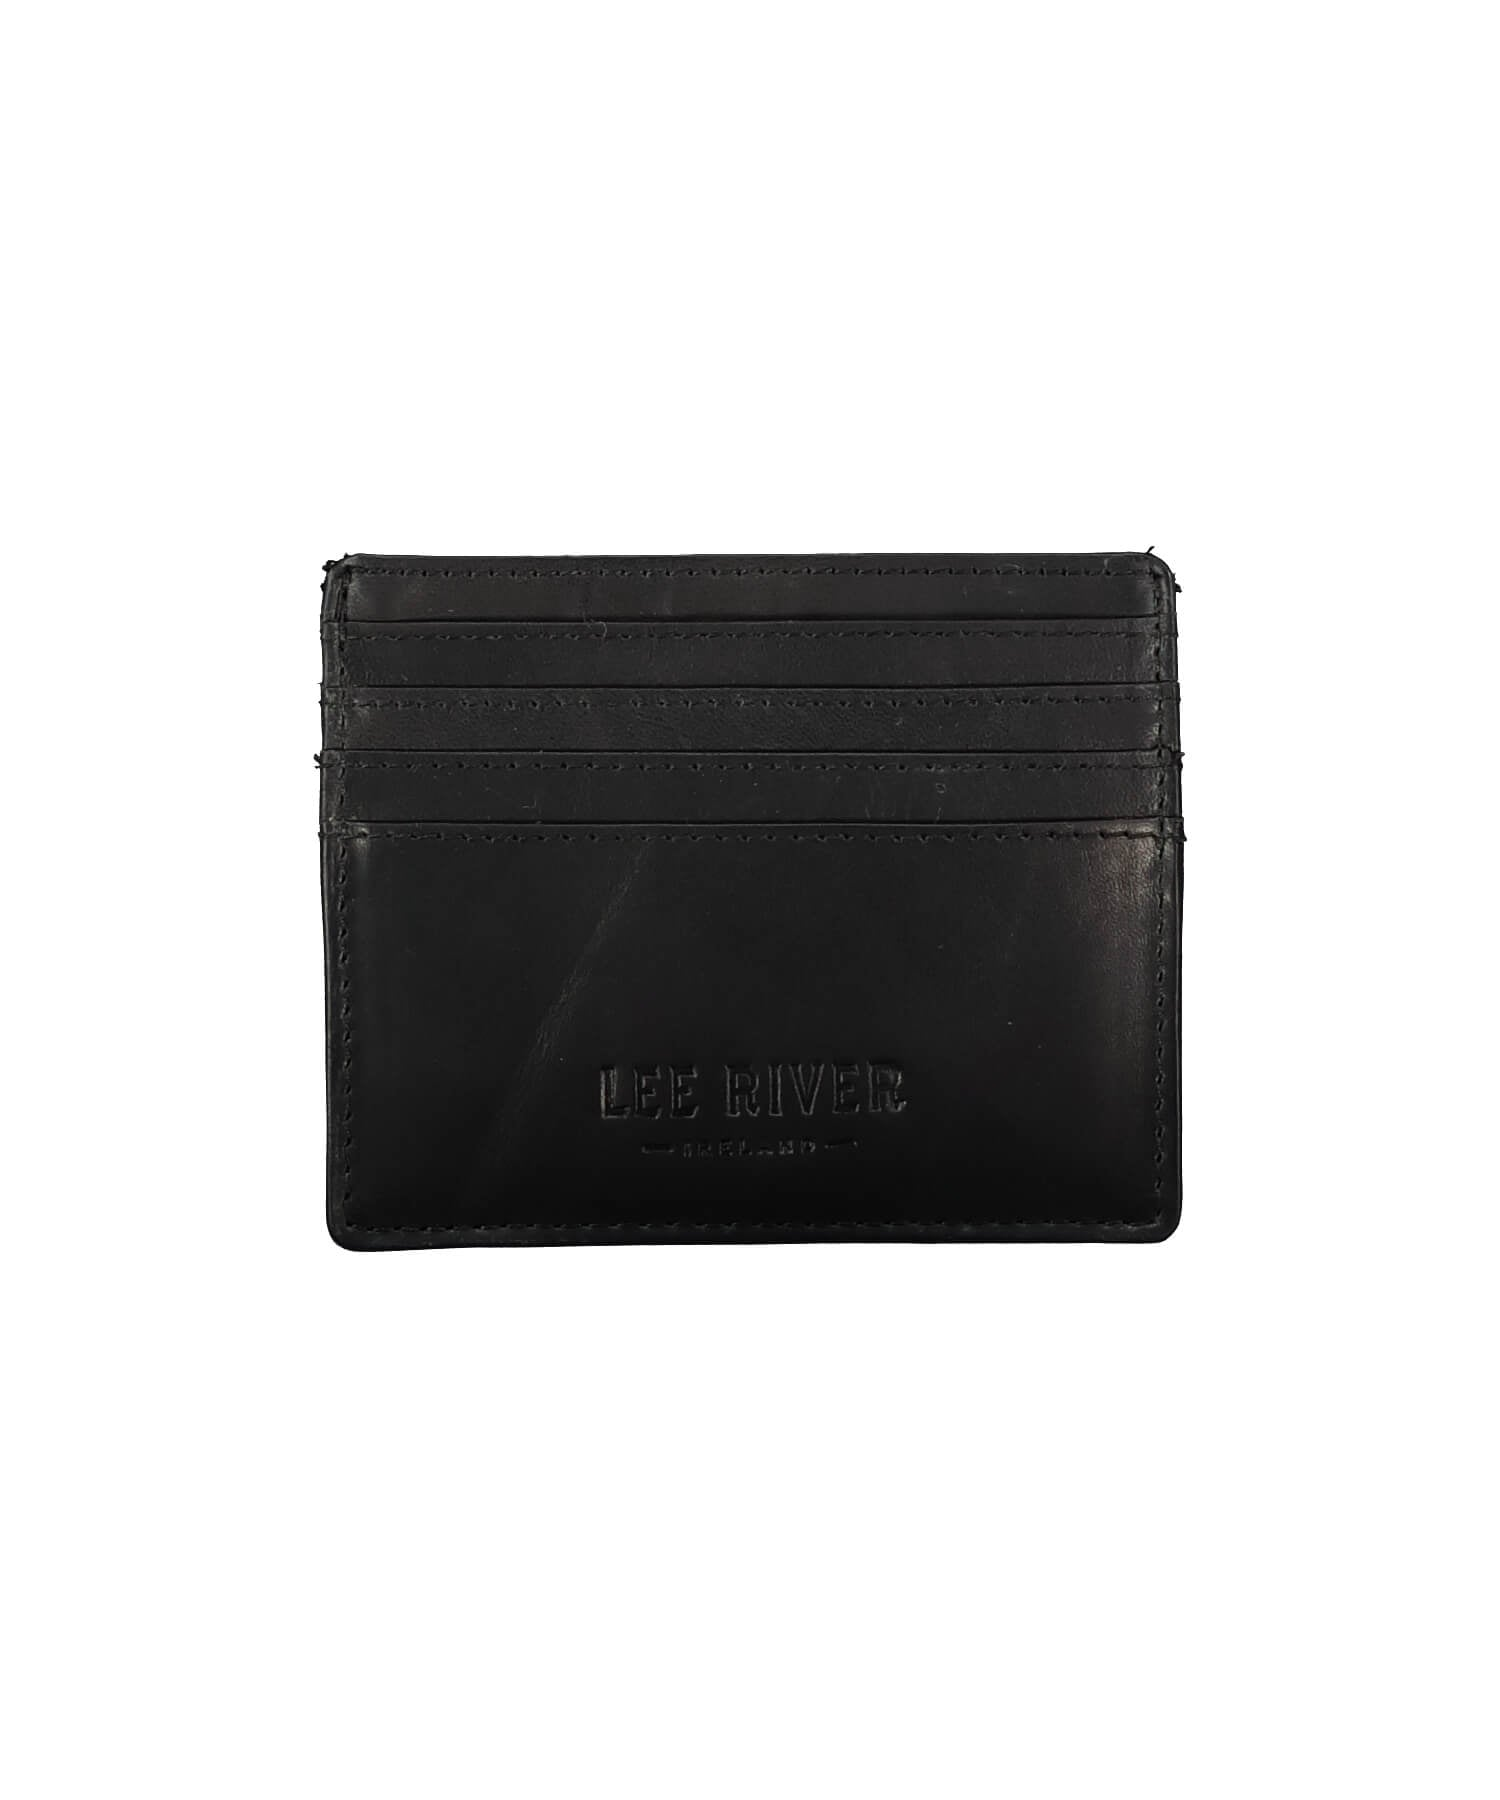 Tomas Card Holder - Black - [Lee River] - Bags, Purses & Wallets - Irish Gifts